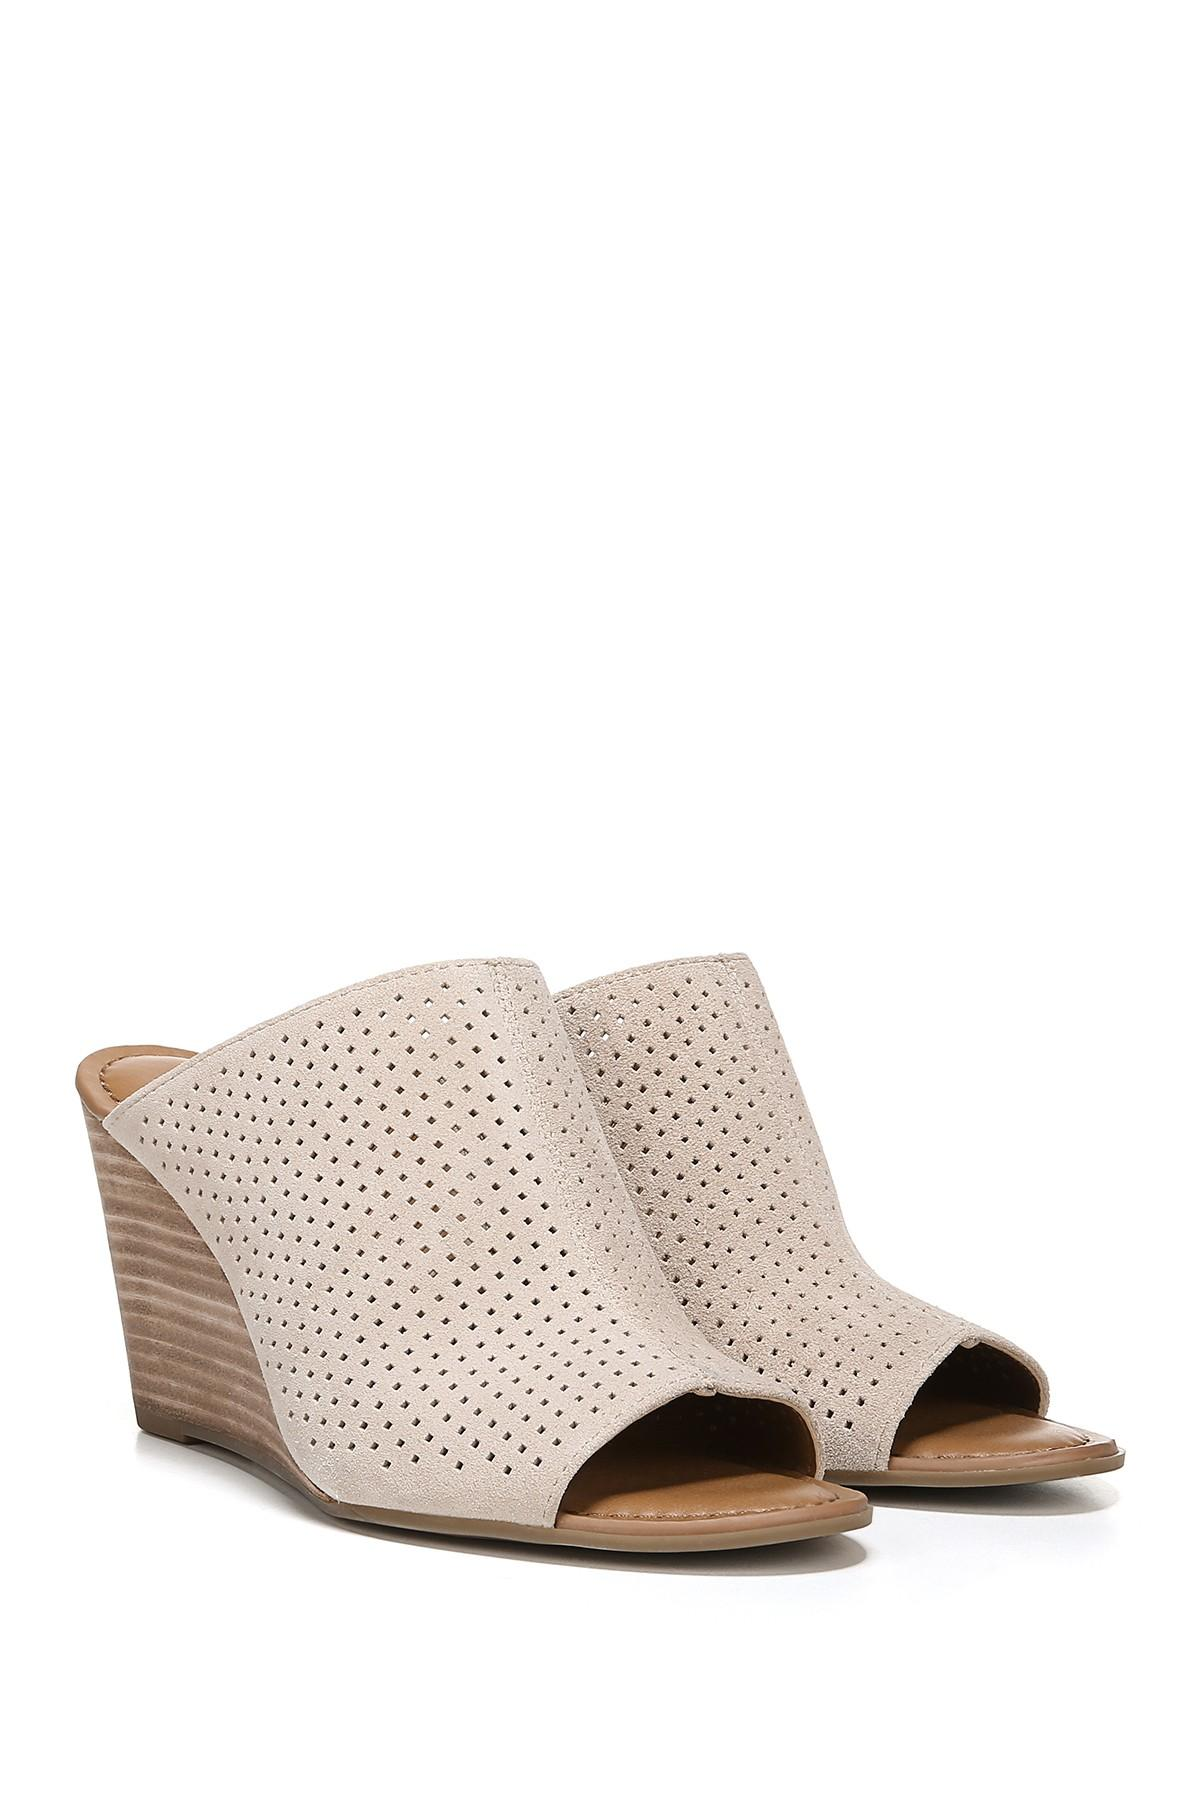 809611a90cfc Franco Sarto - Multicolor Yvette Stacked Wedge Sandal - Lyst. View  fullscreen